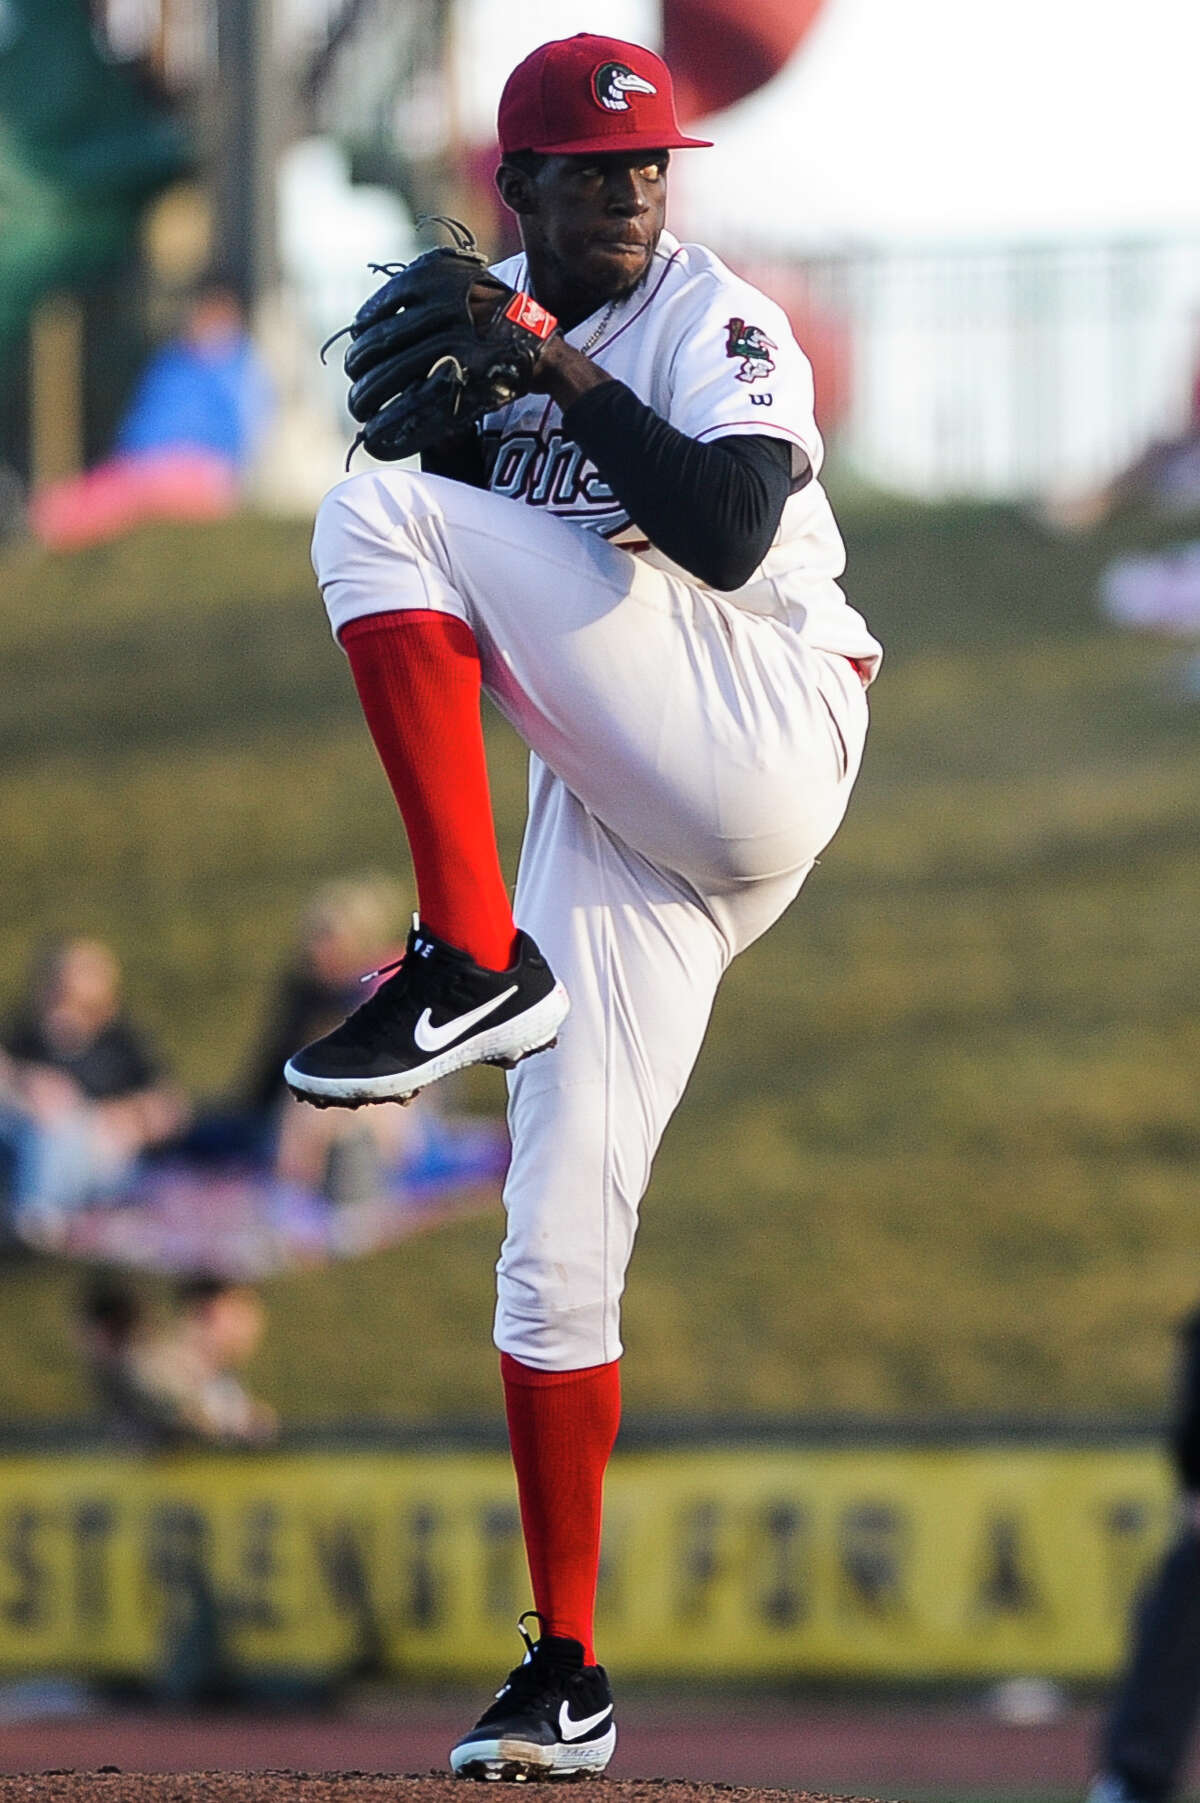 Great Lakes Loons pitcher Jeronimo Castro pitches the ball during a game against South Bend on Monday, April 8, 2019 at Dow Diamond. (Katy Kildee/kkildee@mdn.net)